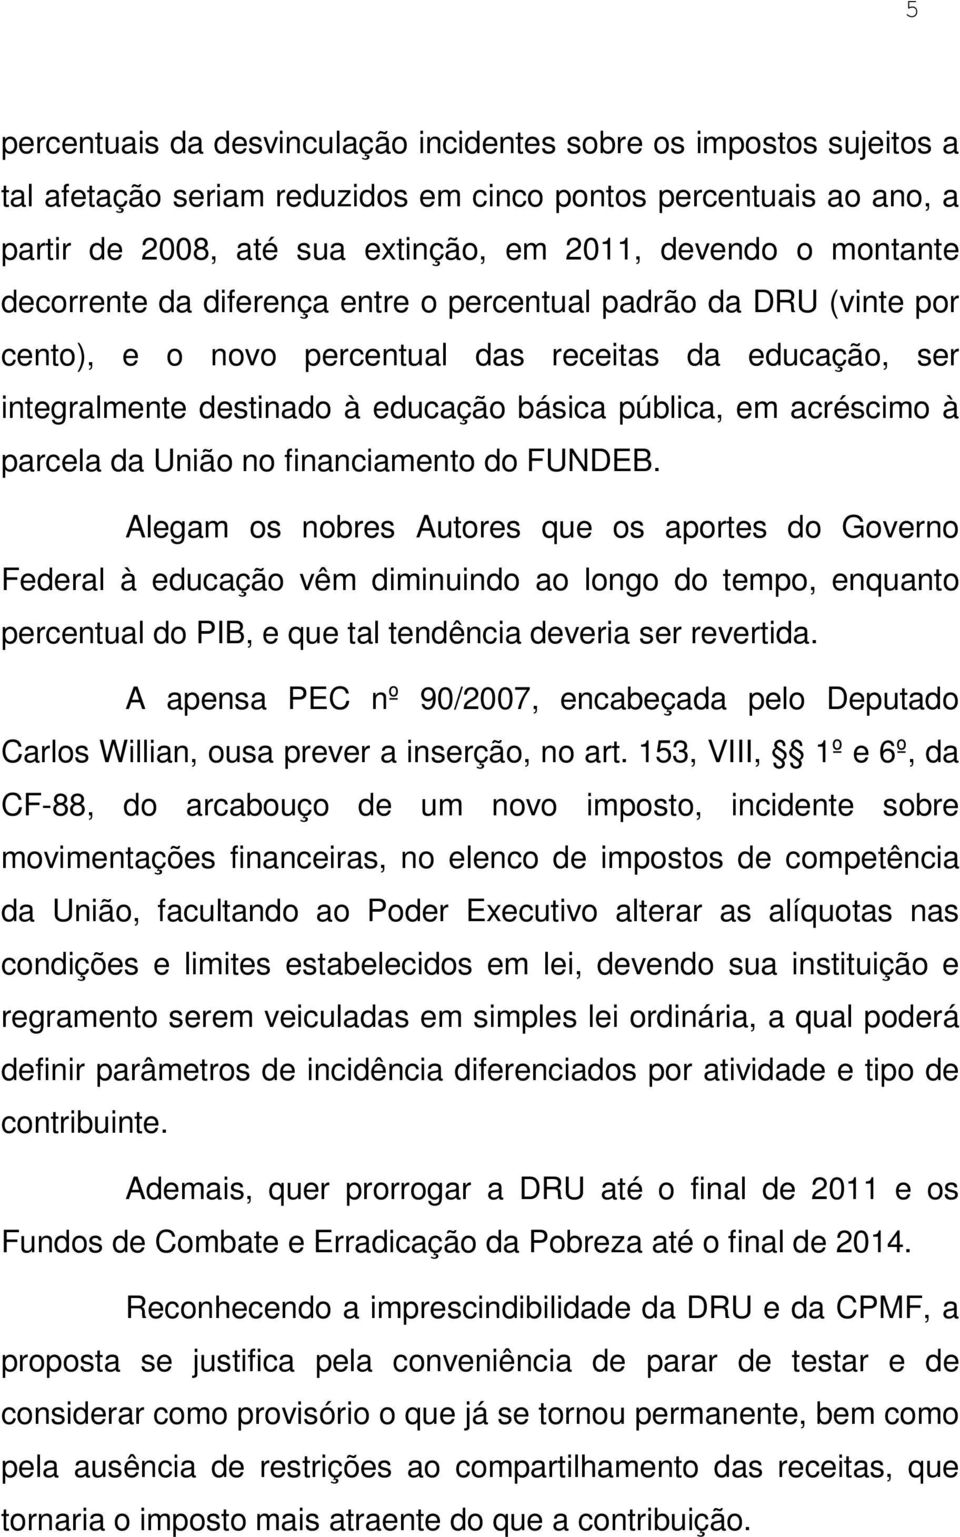 à parcela da União no financiamento do FUNDEB.